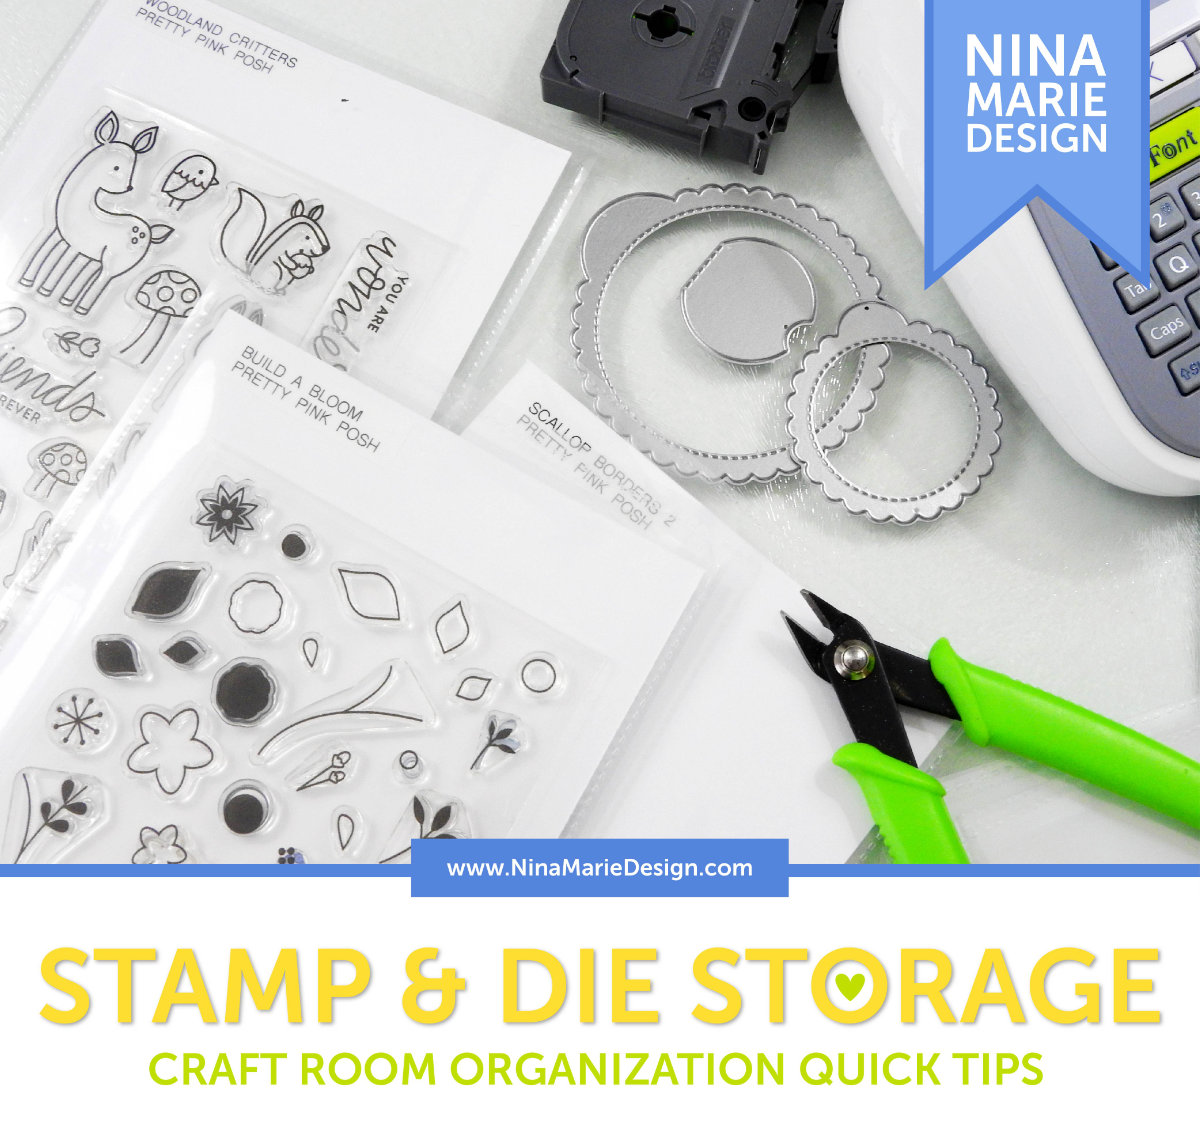 Craft Room Organization Quick Tips Stamps and Dies | Nina-Marie Design